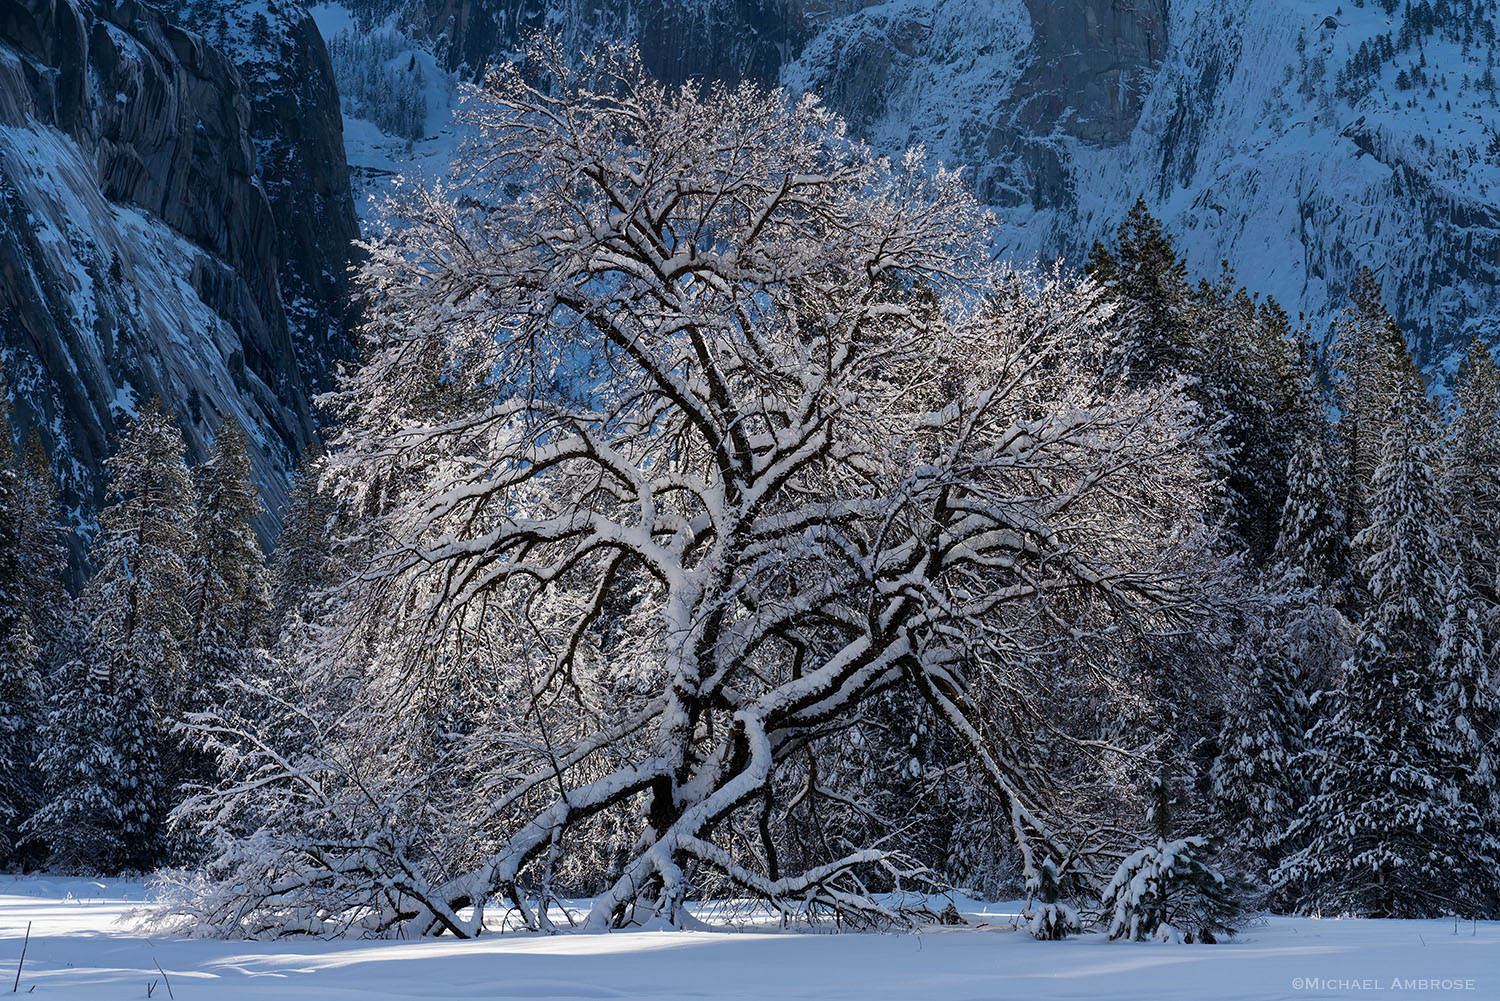 Winter's snow coast Yosemite Valley and the famous Elm tree also photographed by Ansel Adams.